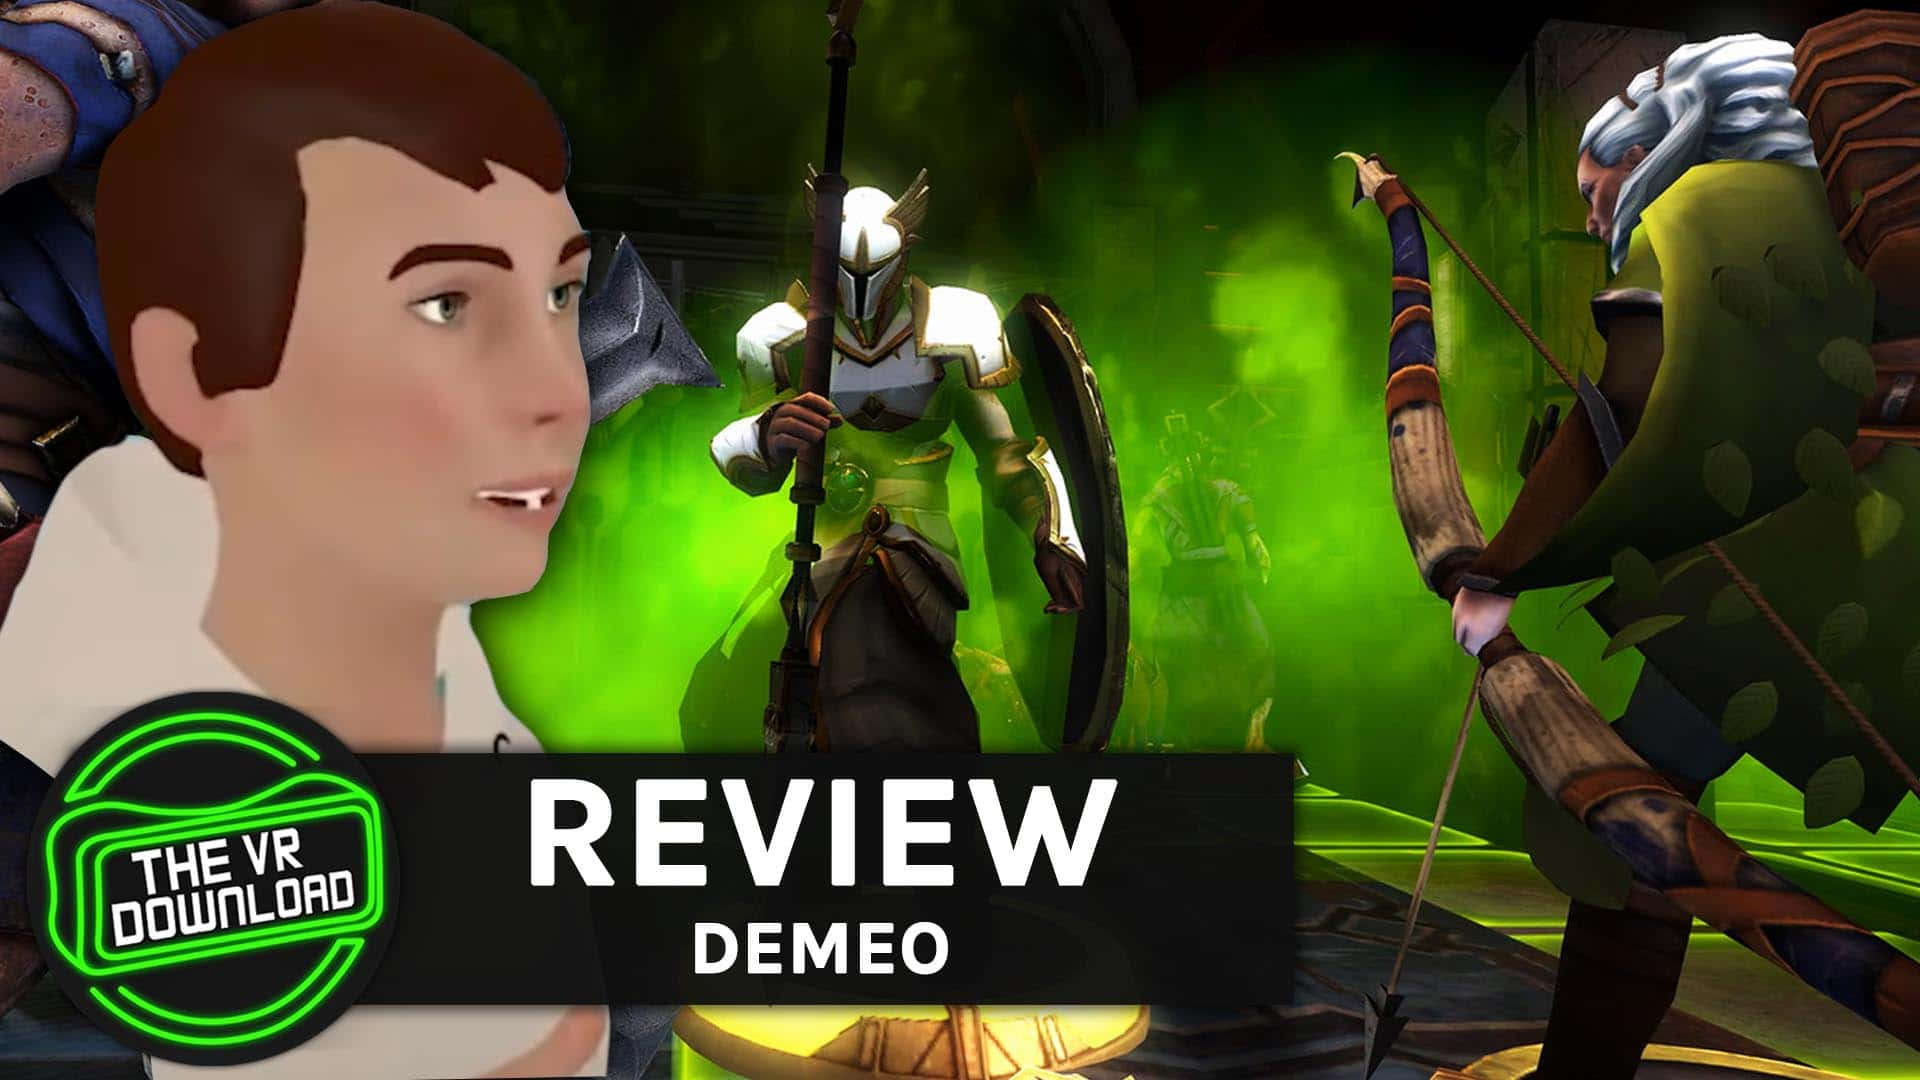 DEMEO REVIEW